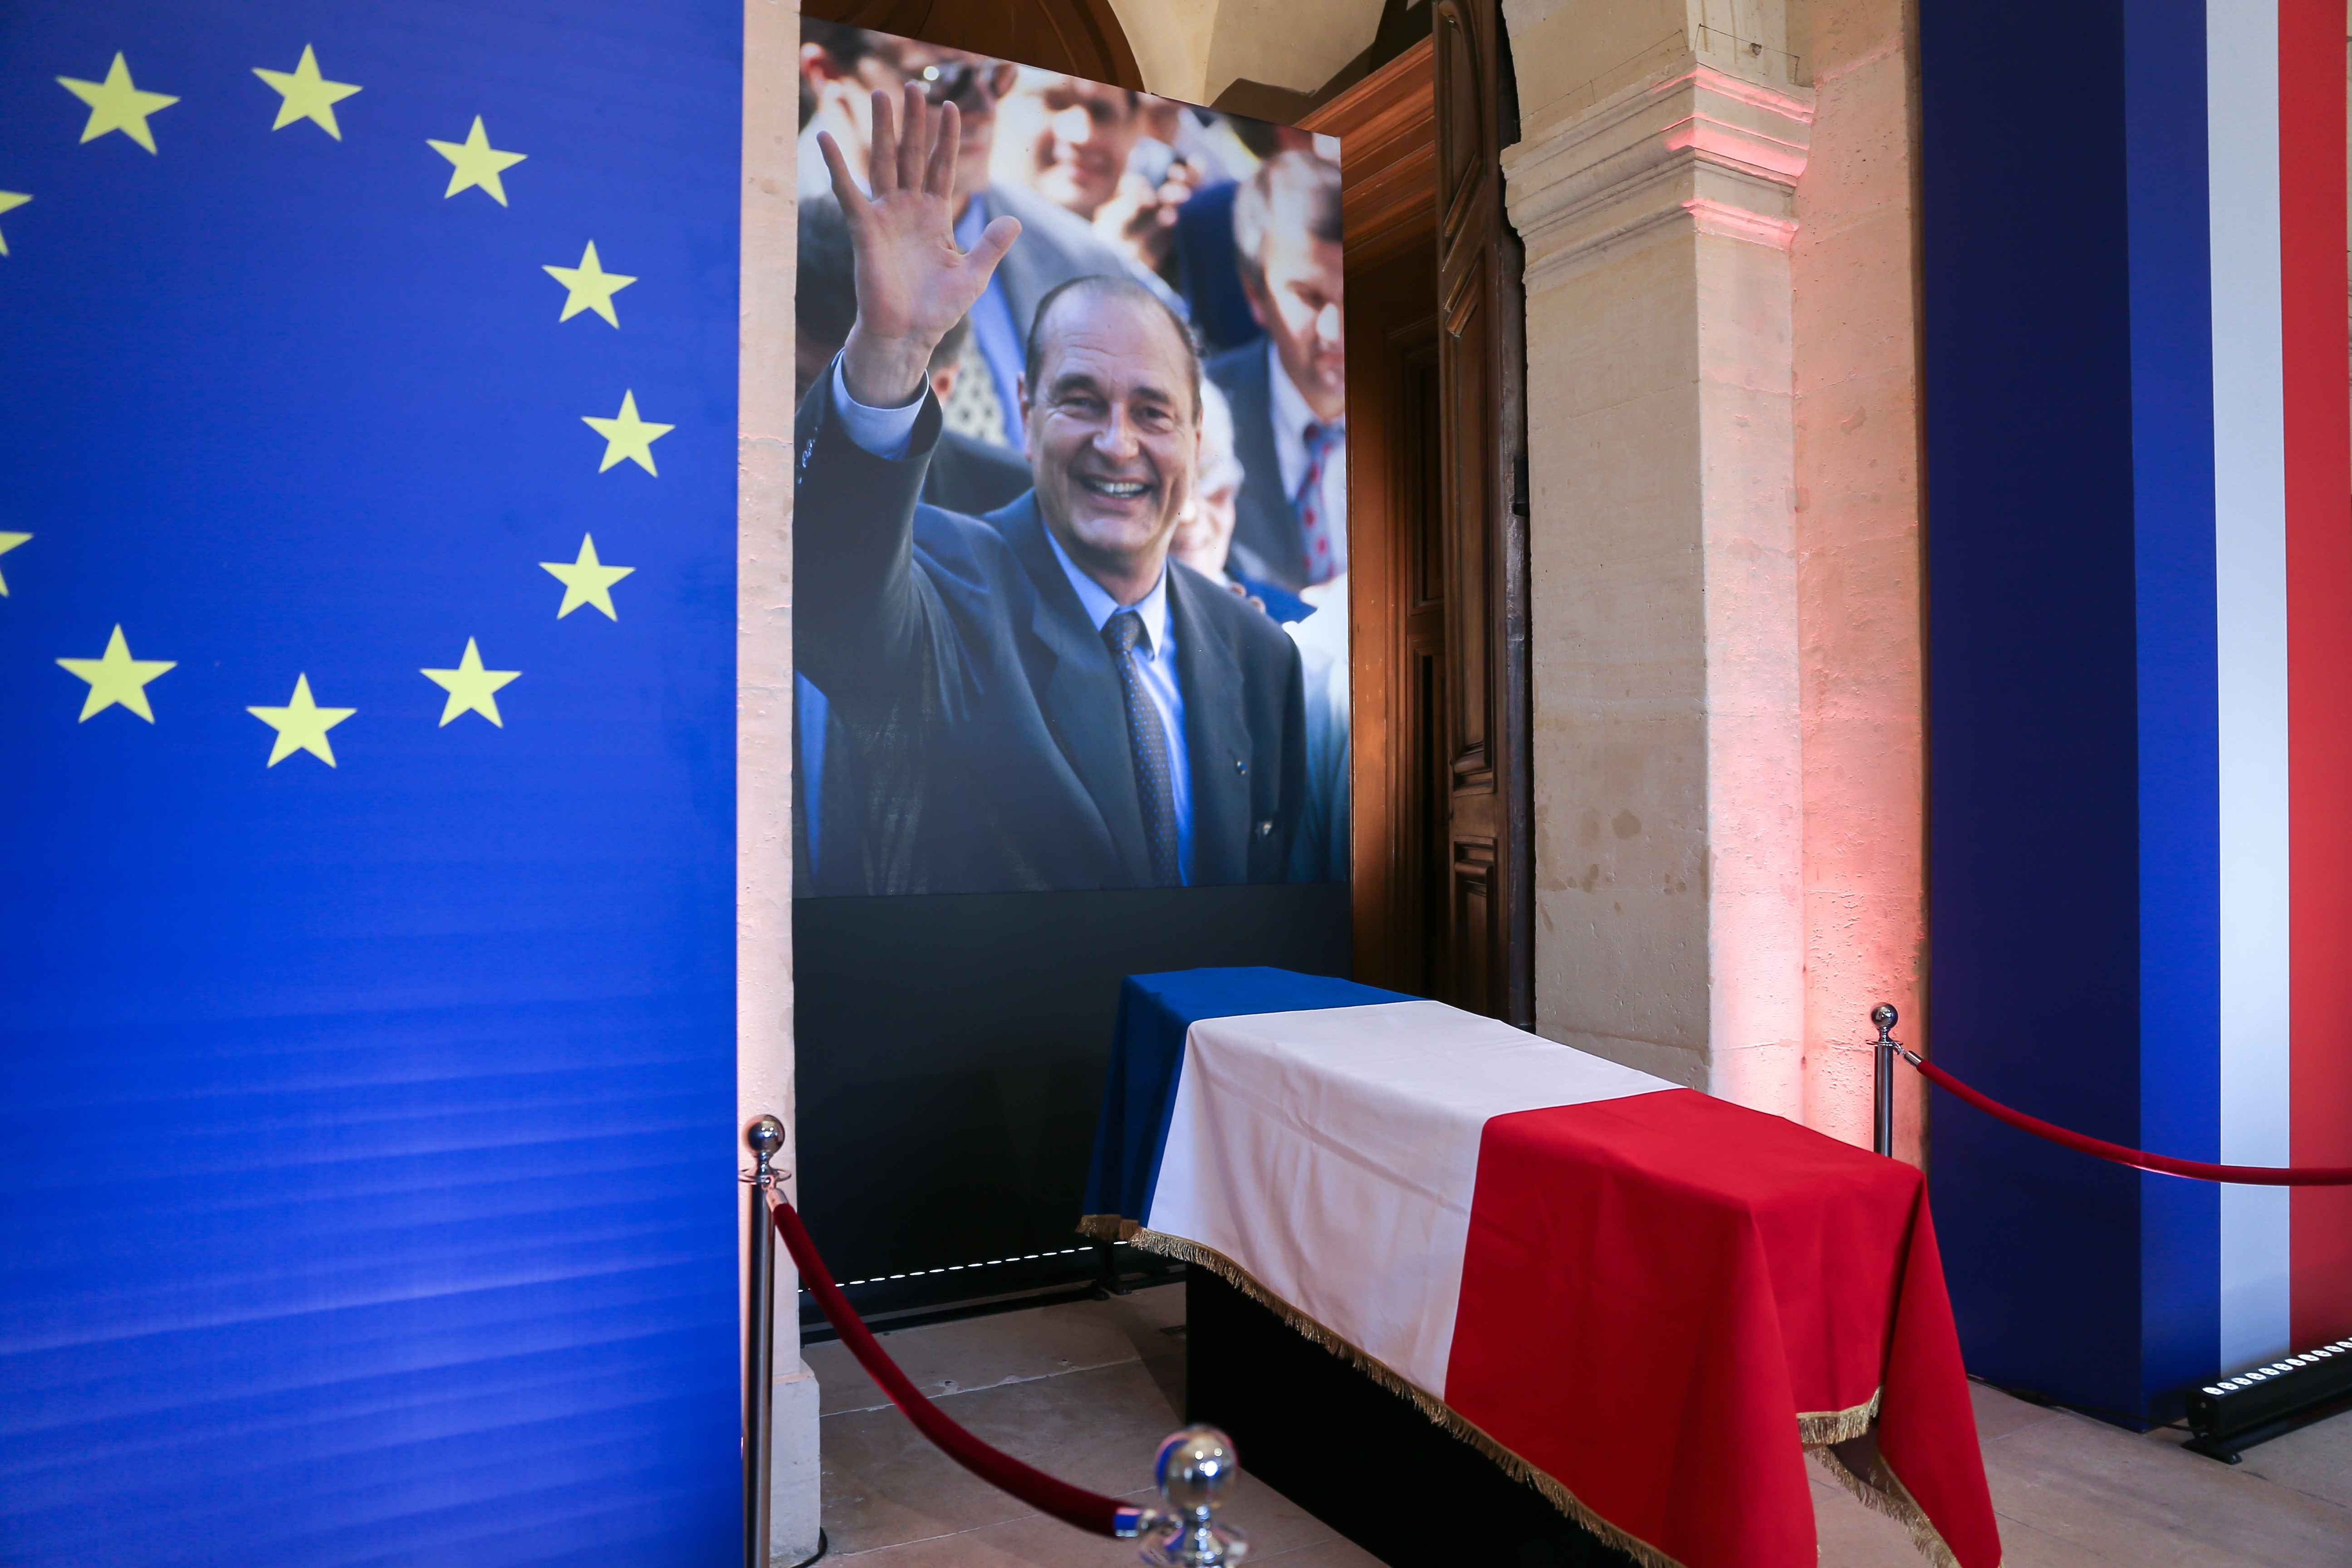 The coffin of late French President Jacques Chirac lies in state at the Saint-Louis-des-Invalides cathedral at the Invalides memorial complex in central Paris on September 29, 2019. Jacques Chirac died on September 26 at the age of 86 after a long battle w